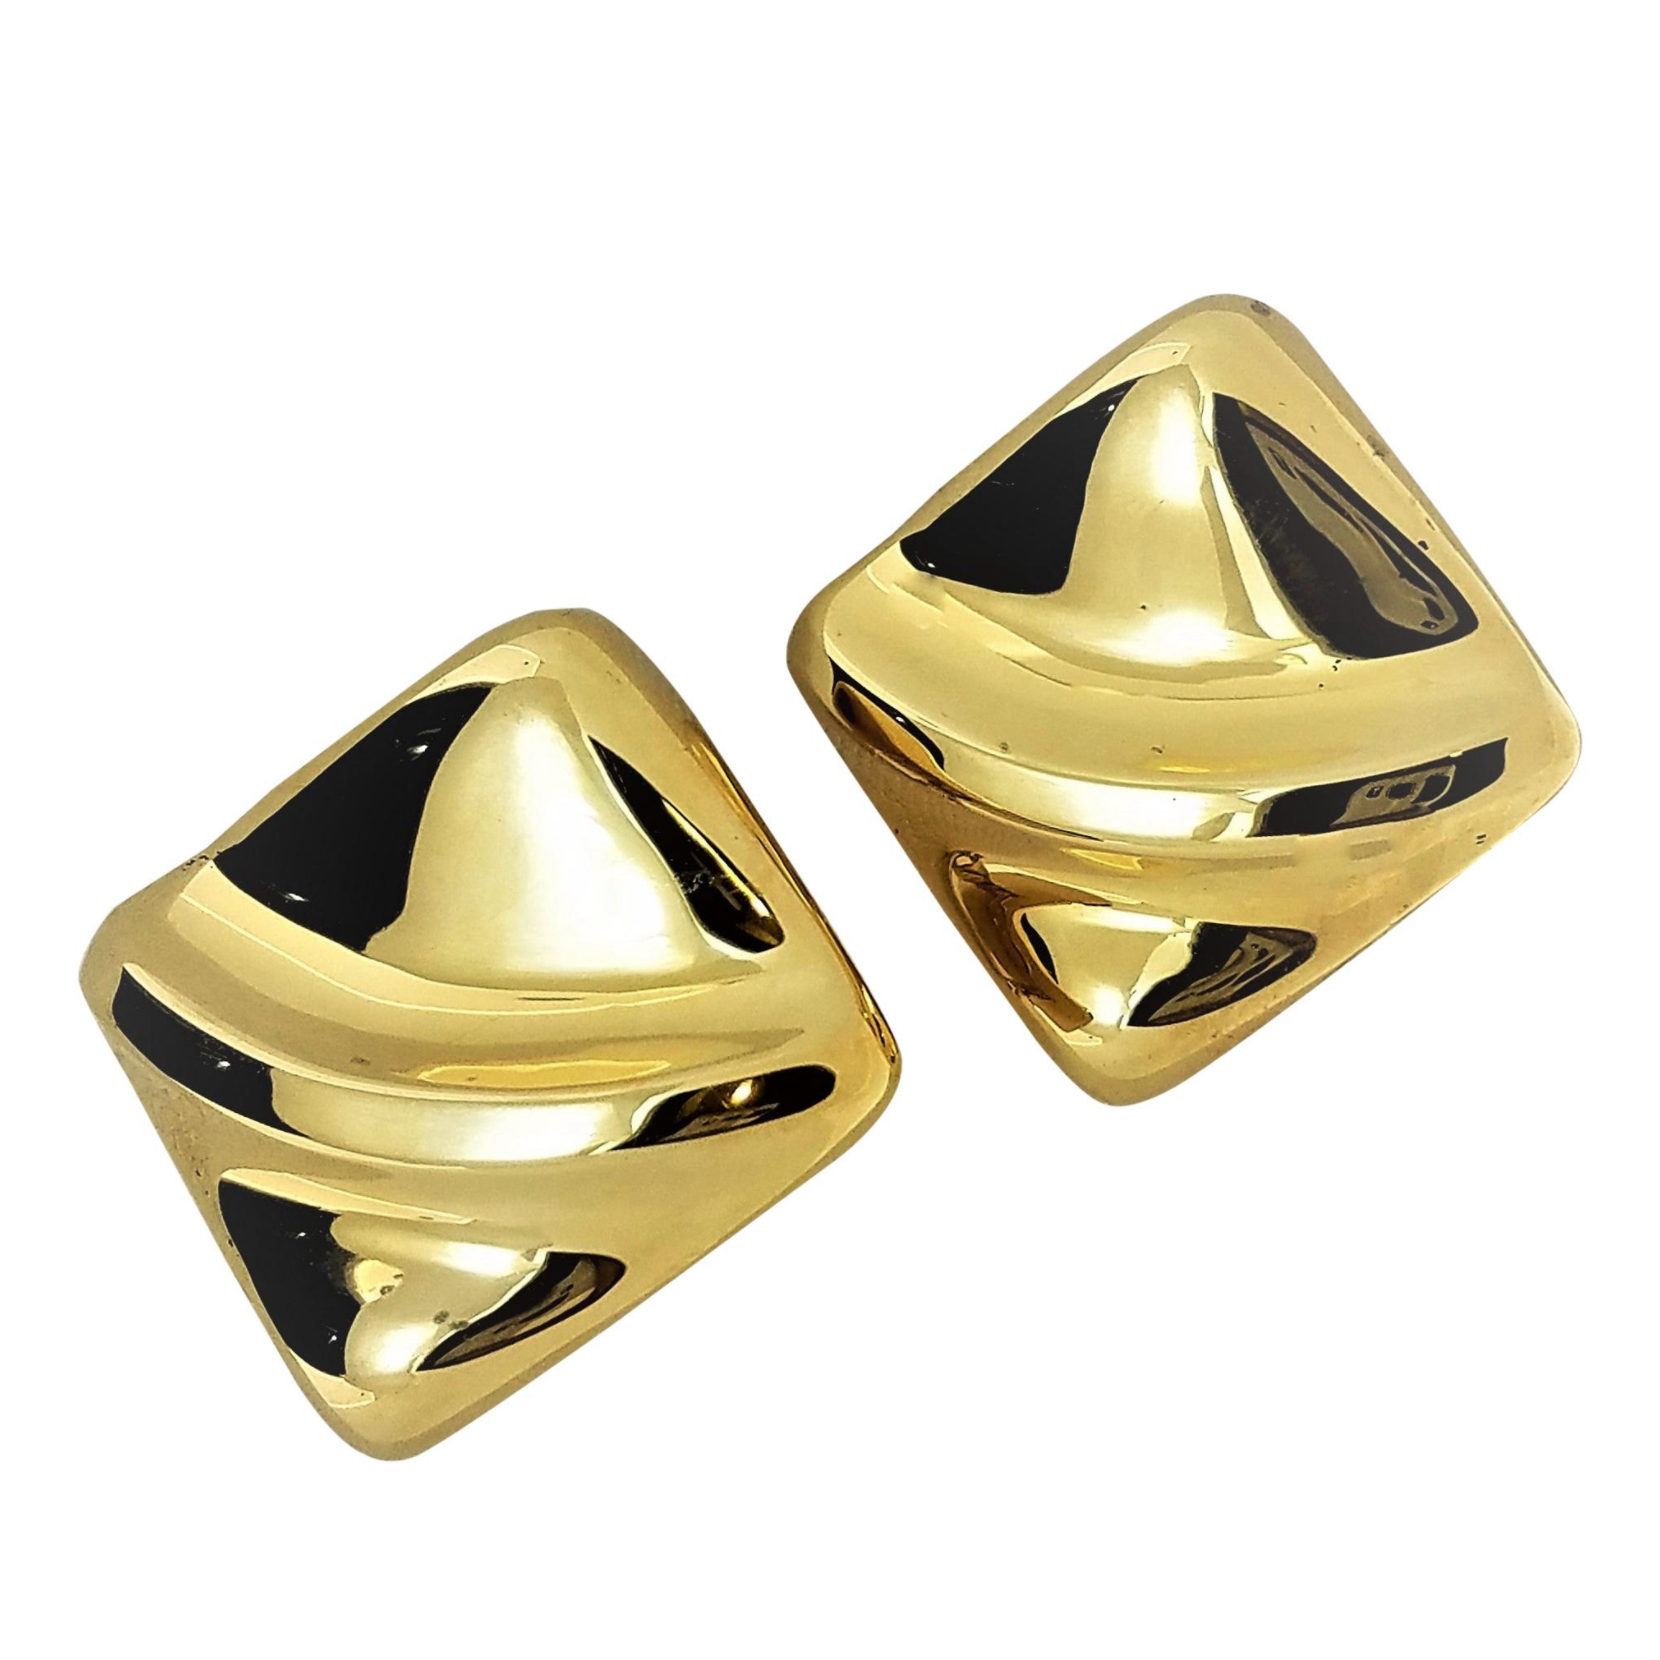 18 Karat Gold Square Triangular Diamond Shape Design Clip and Post Earrings